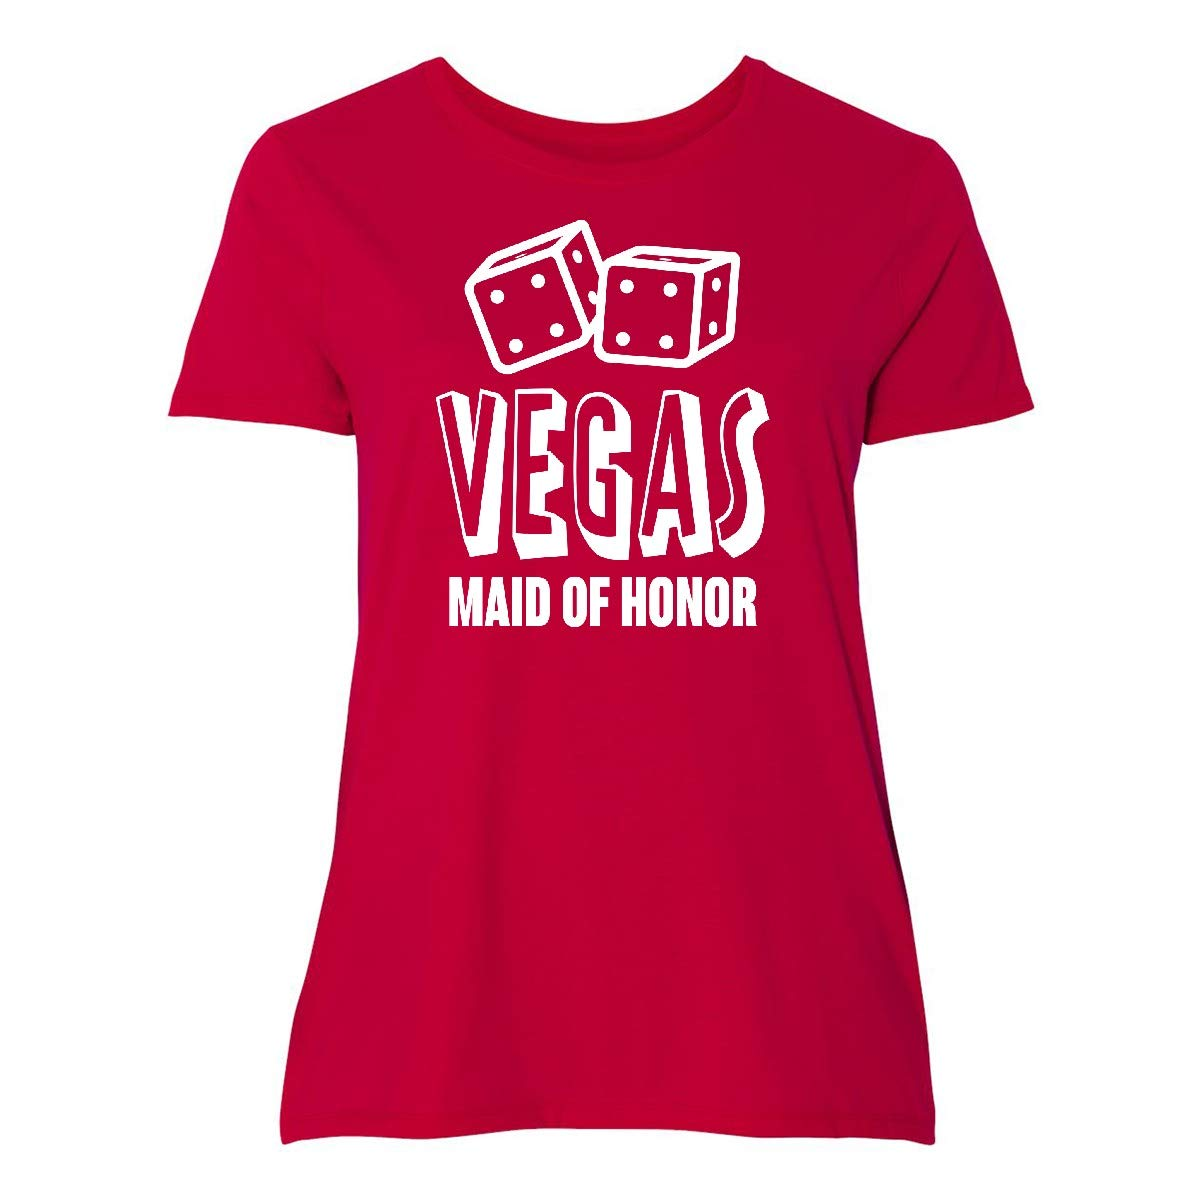 Vegas Maid Of Honor With Dice Plus T Shirt 356aa 4528